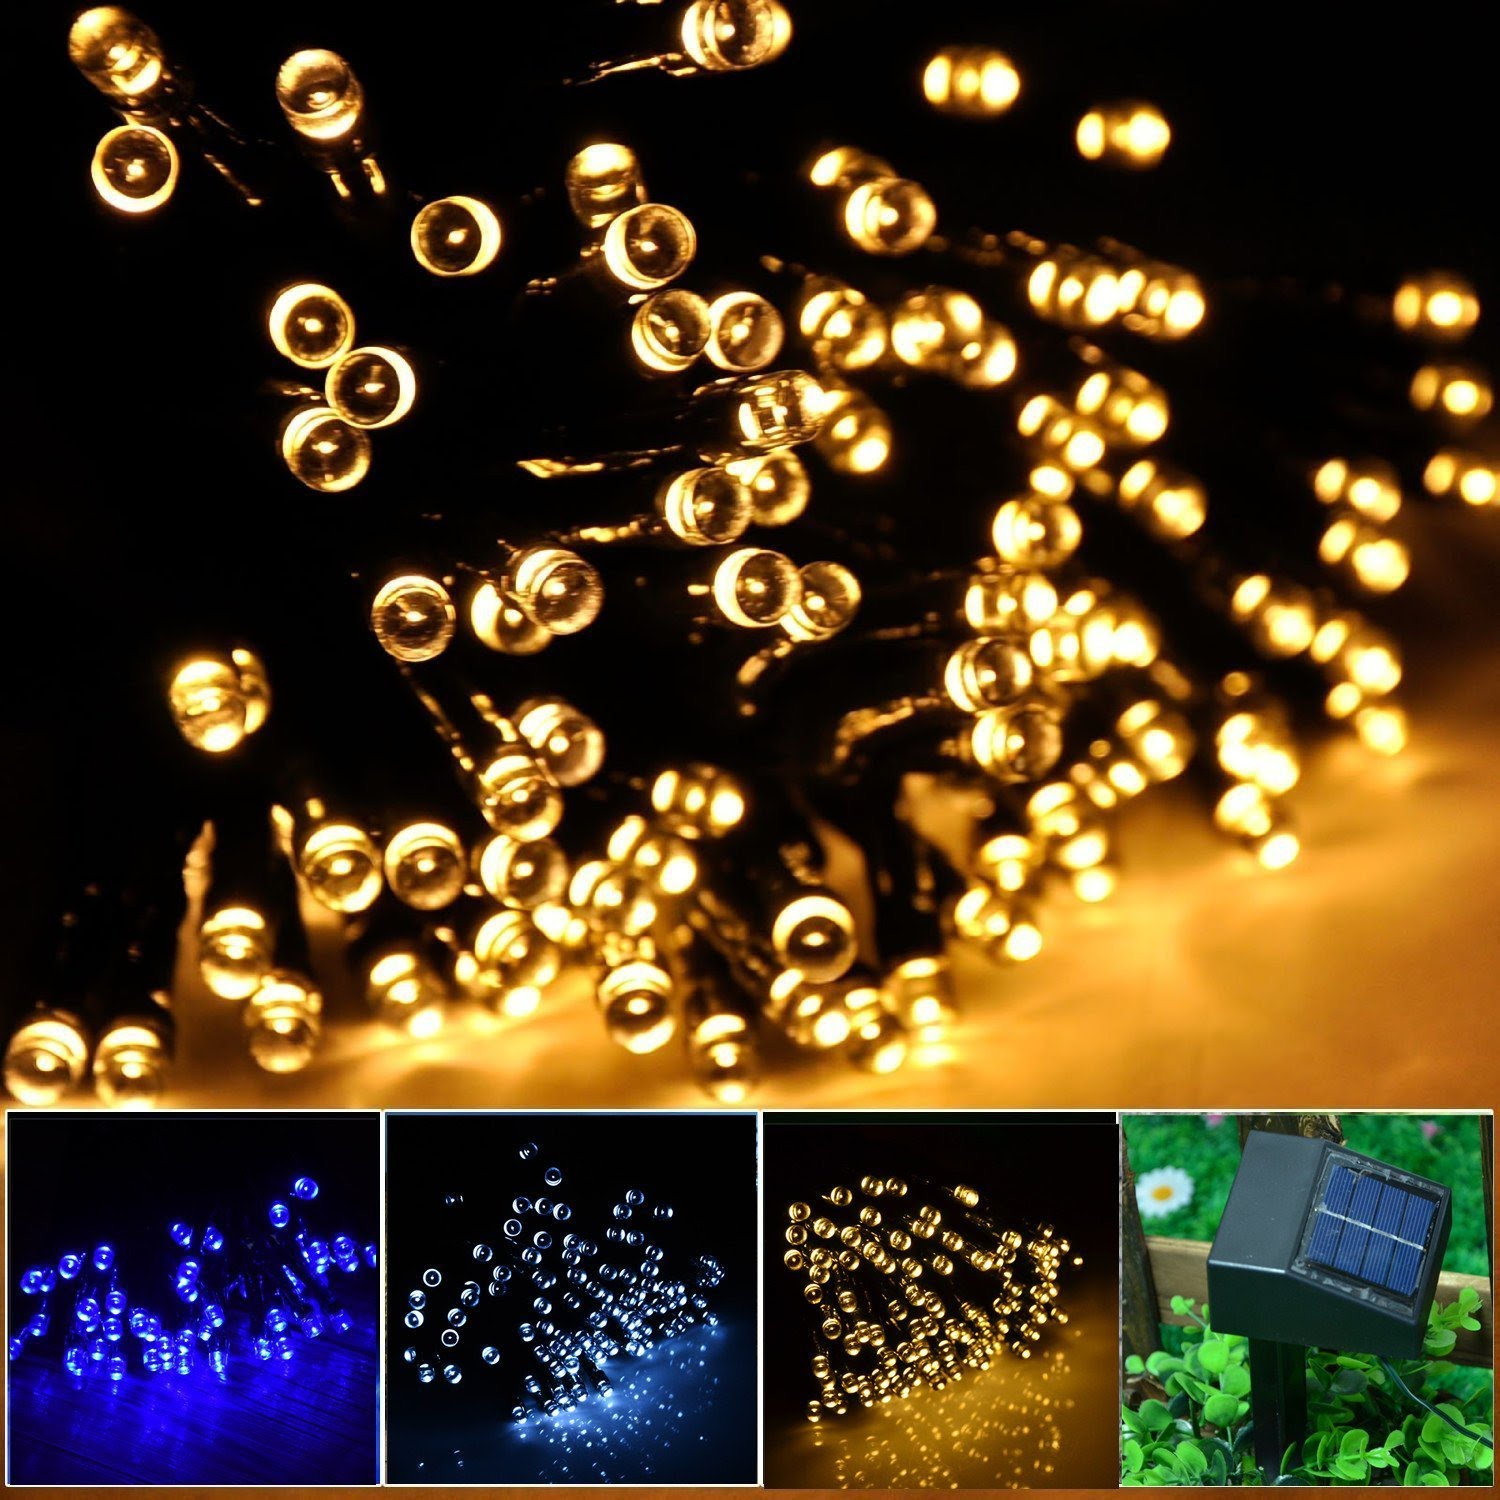 sc 1 st  B4bestreviews & Best Christmas solar string lights Reviews 2018 \u2013 B4bestreviews